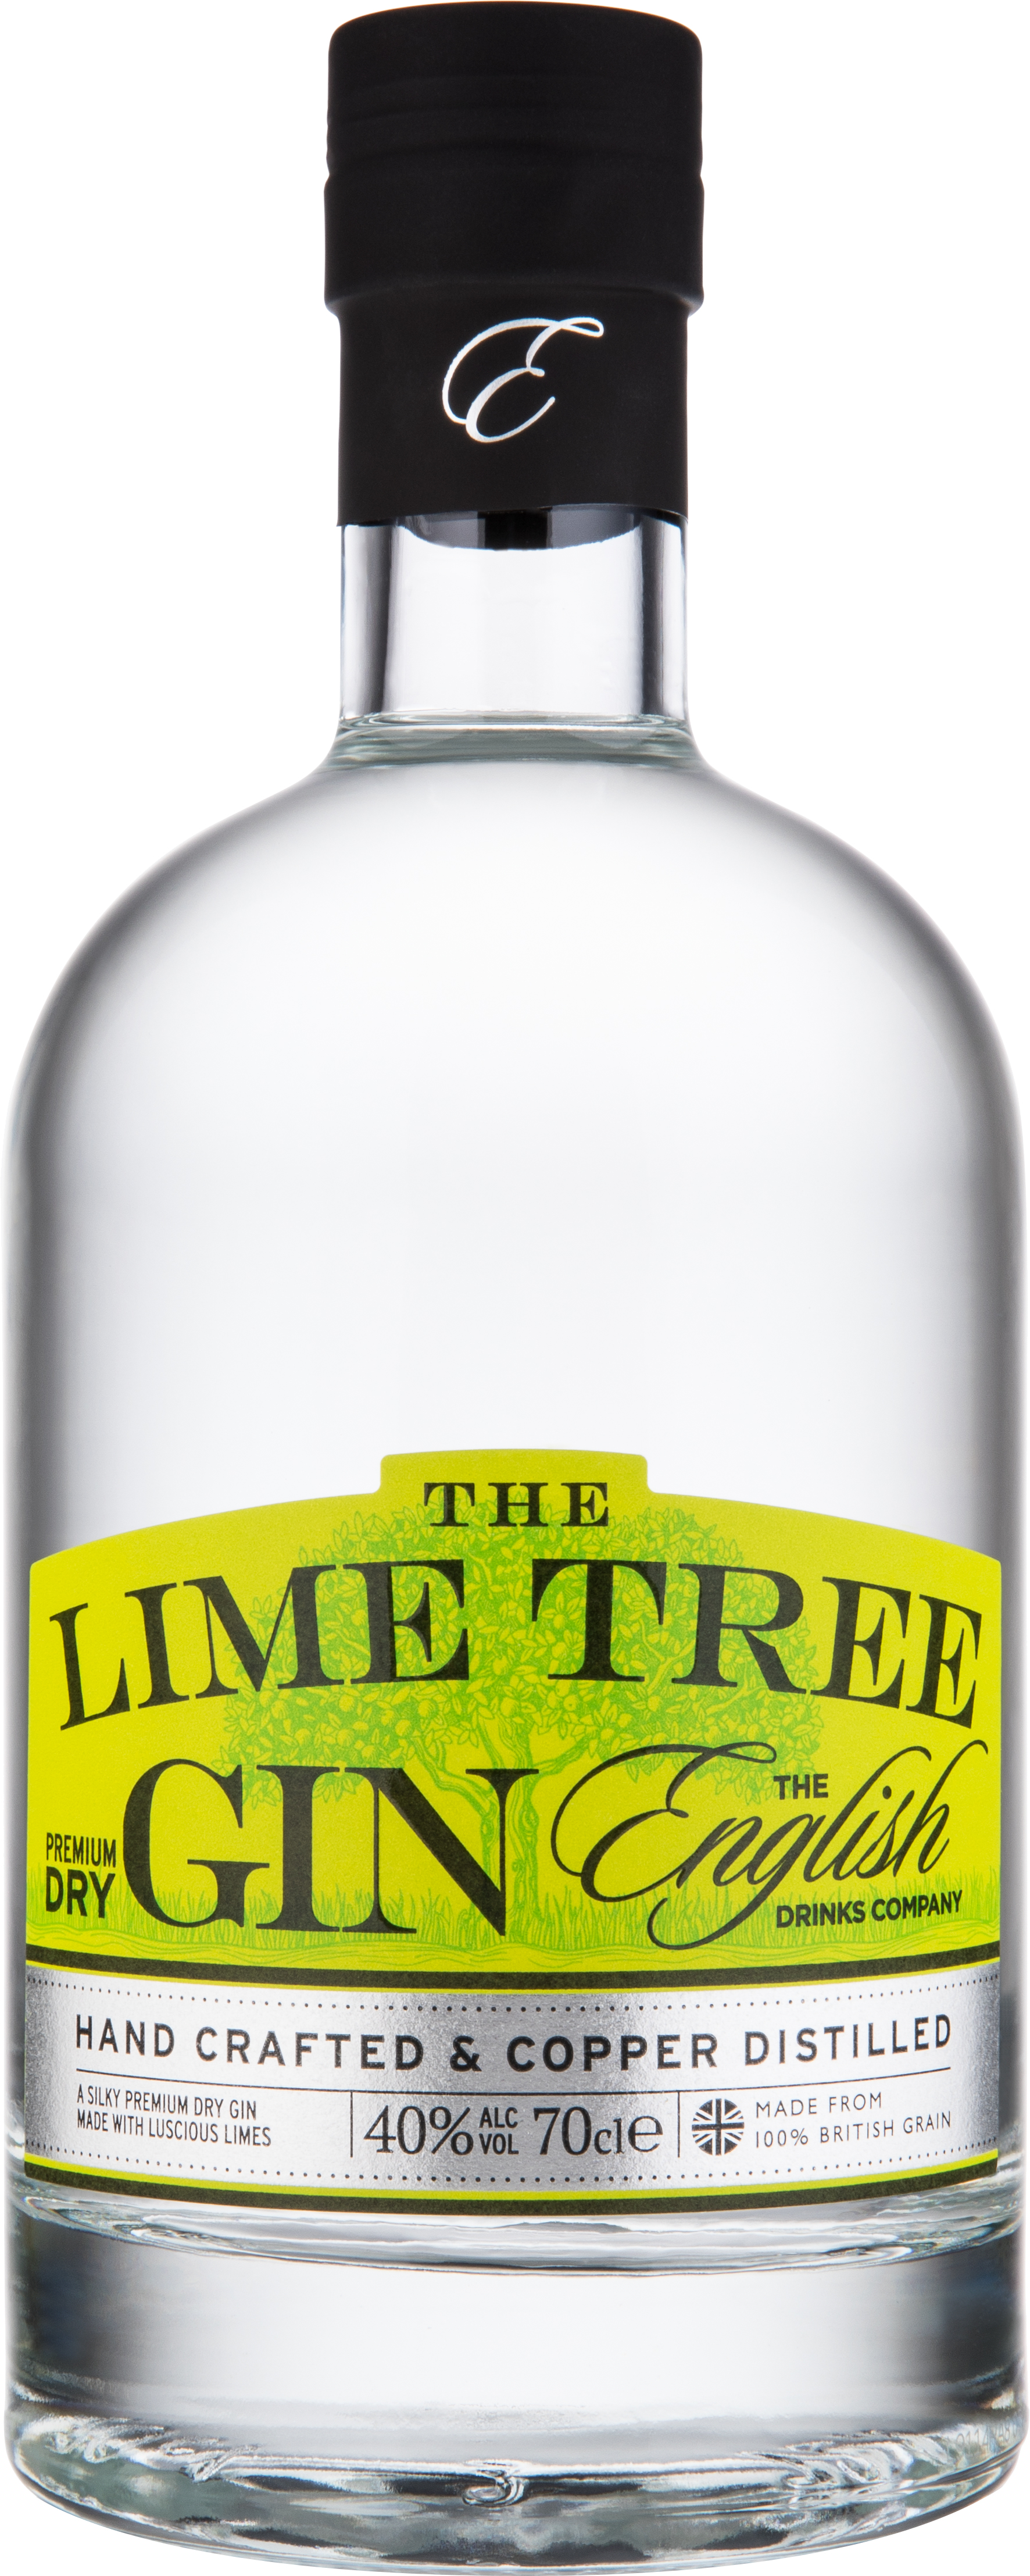 The English Drinks Company - Lime Tree Gin 70cl Bottle